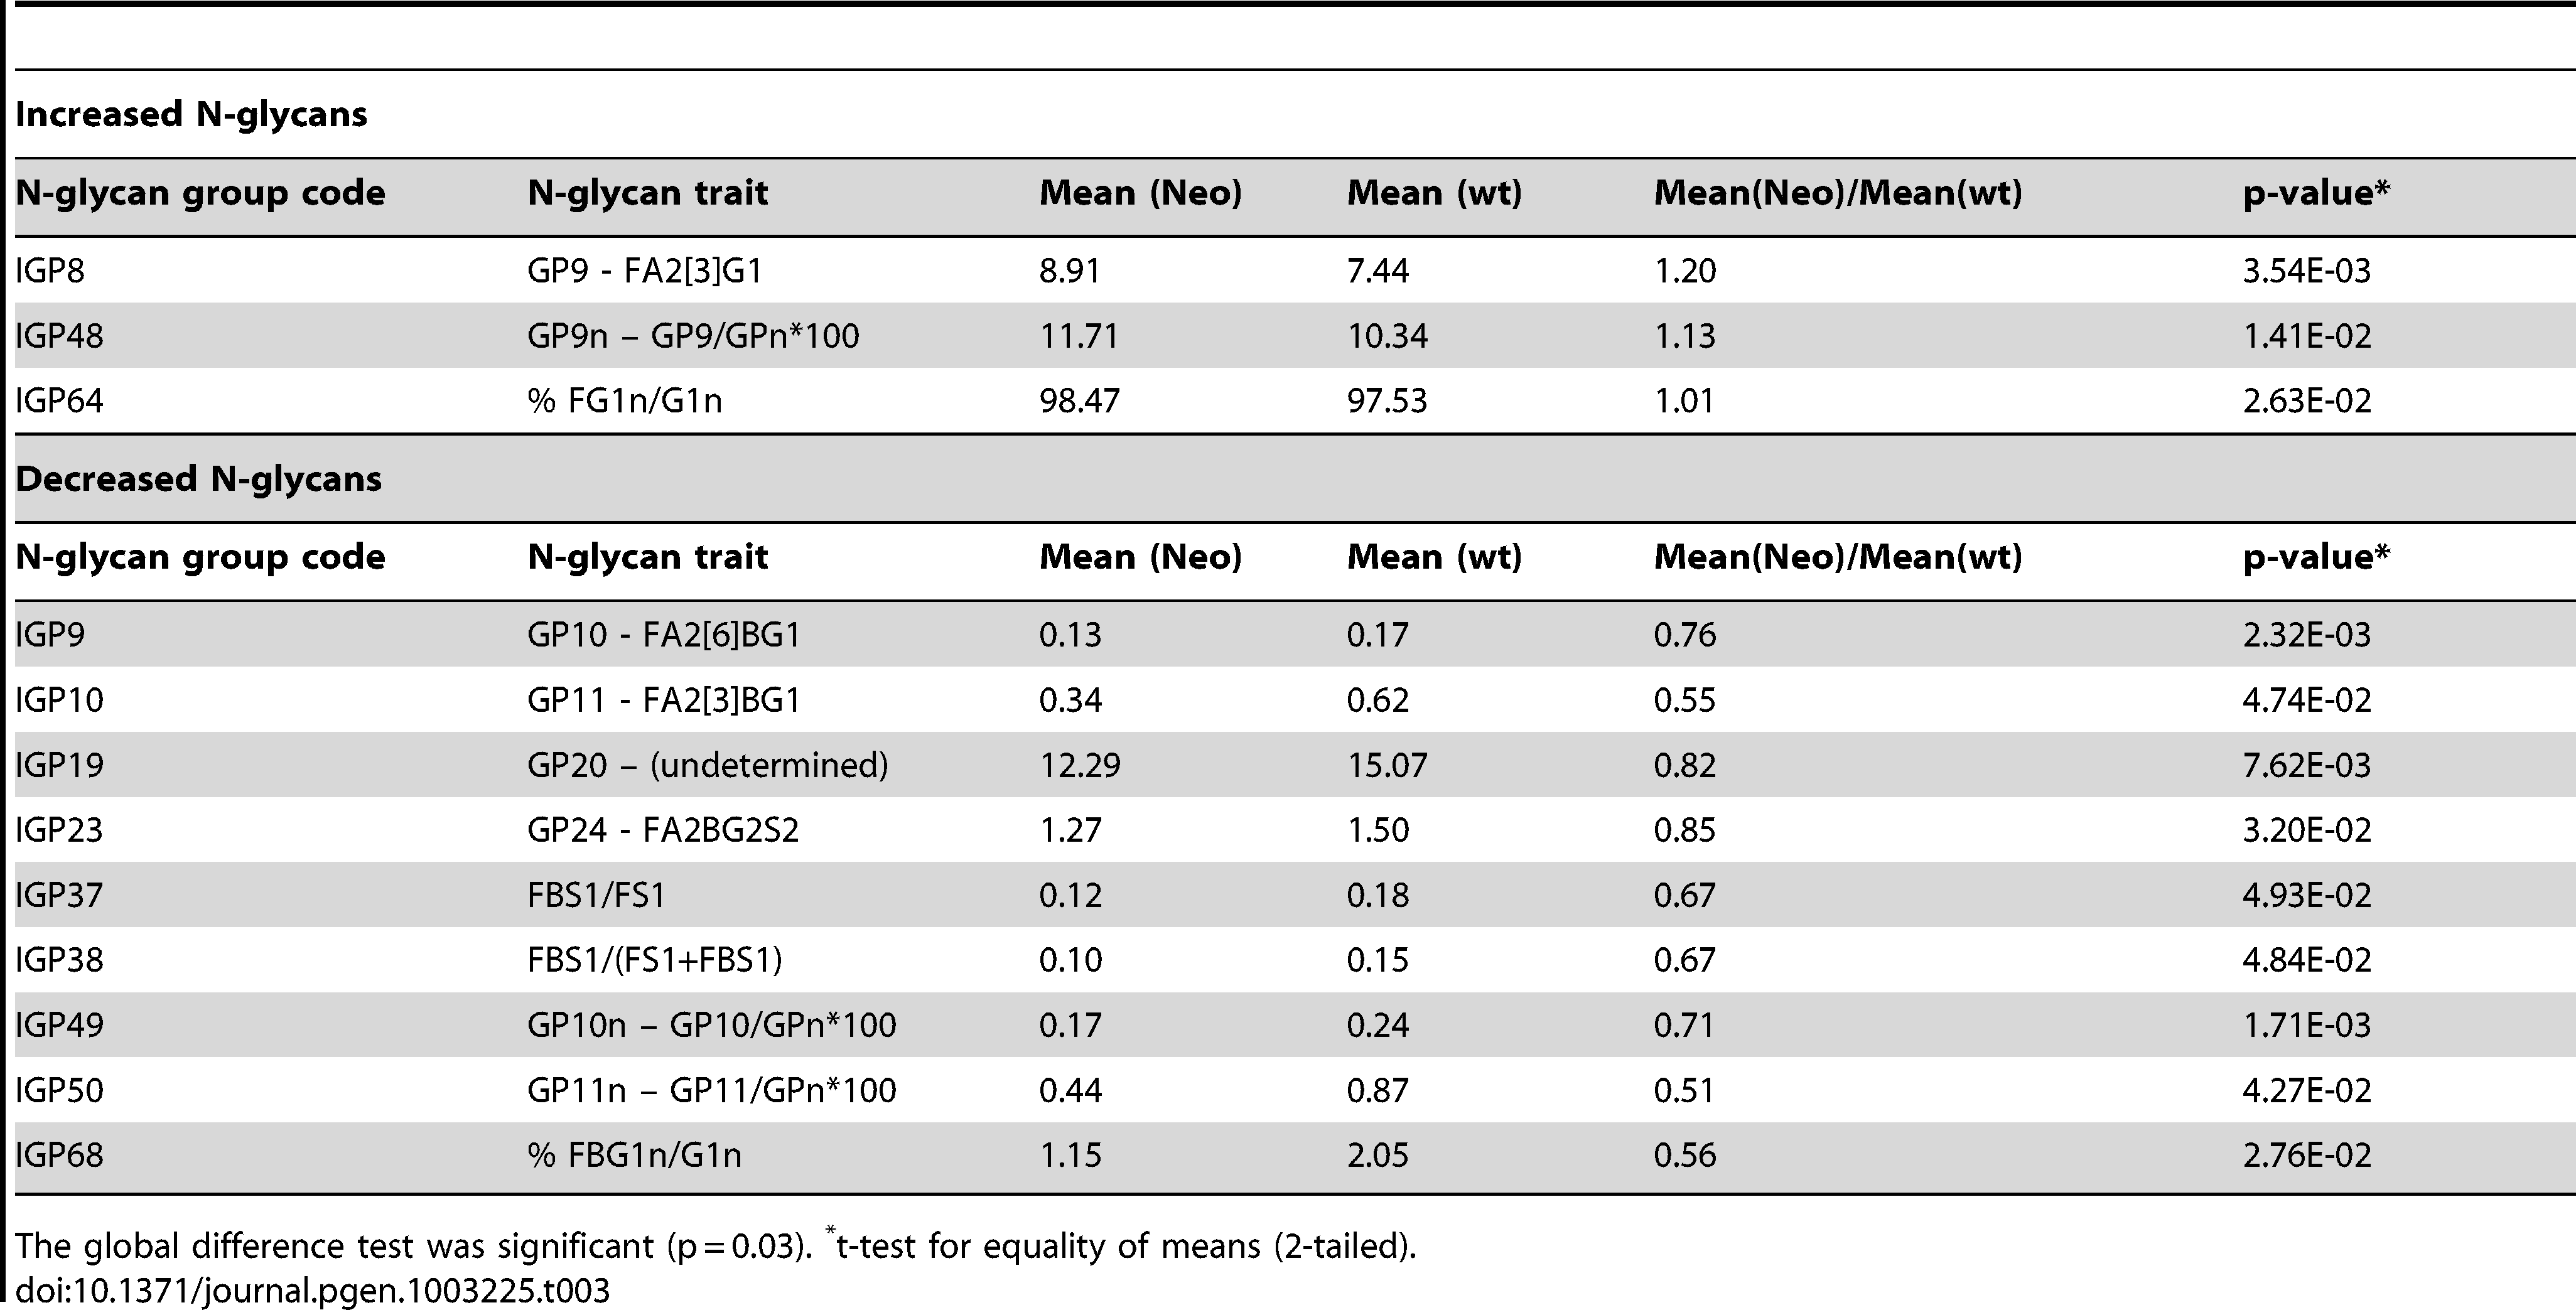 Twelve groups of IgG N-glycans (of 77 measured) that showed nominally significant difference (p<0.05) in observed values between 5 mice that were heterozygous <i>Ikzf1</i> knock-outs (Neo) and 5 wild-type controls (wt).